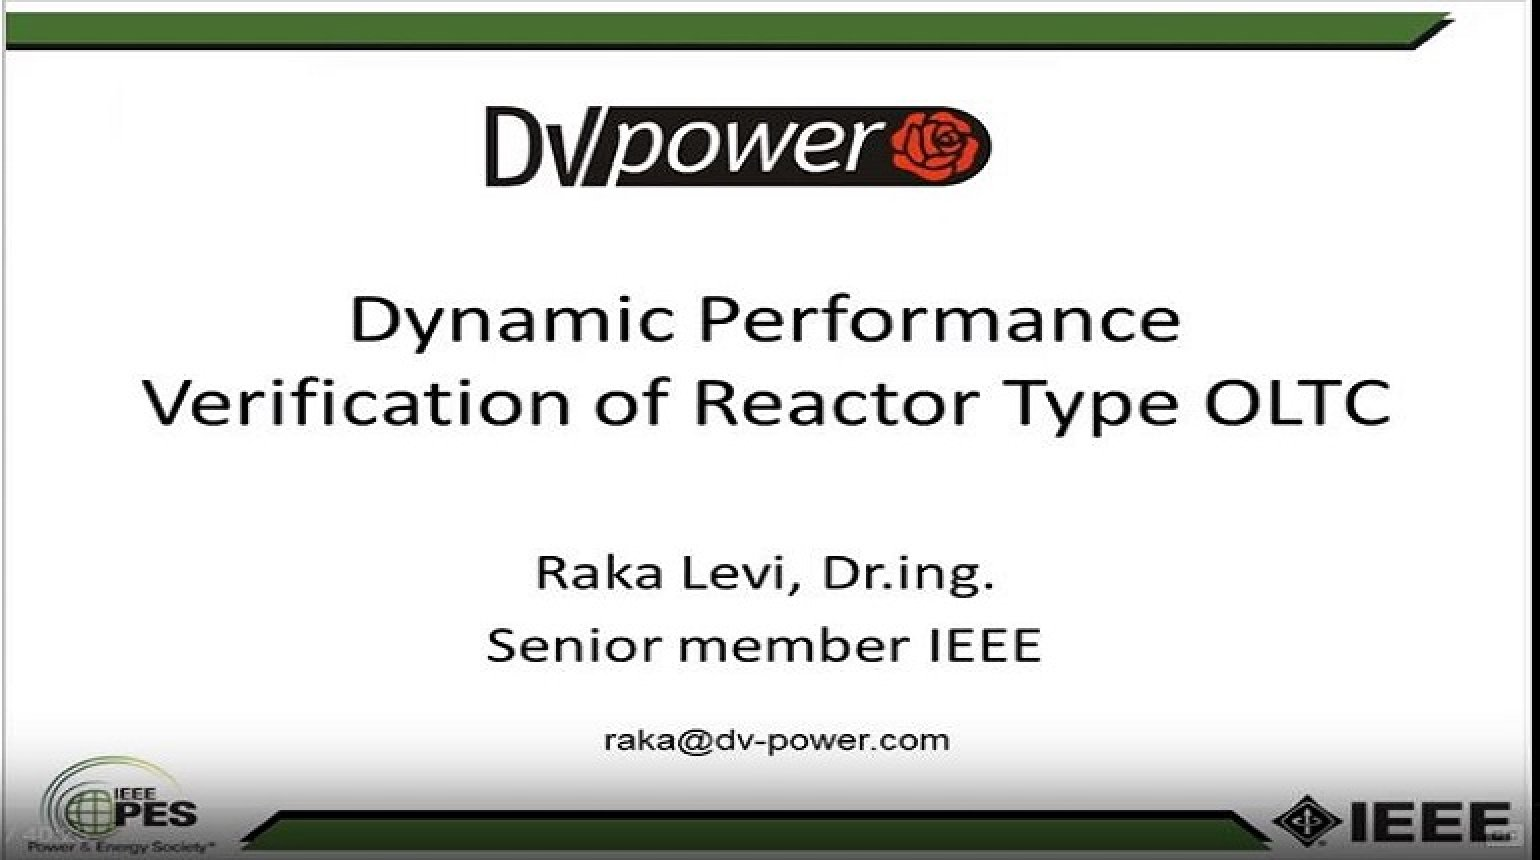 Dynamic Performance Verification of Reactor Type OLTC